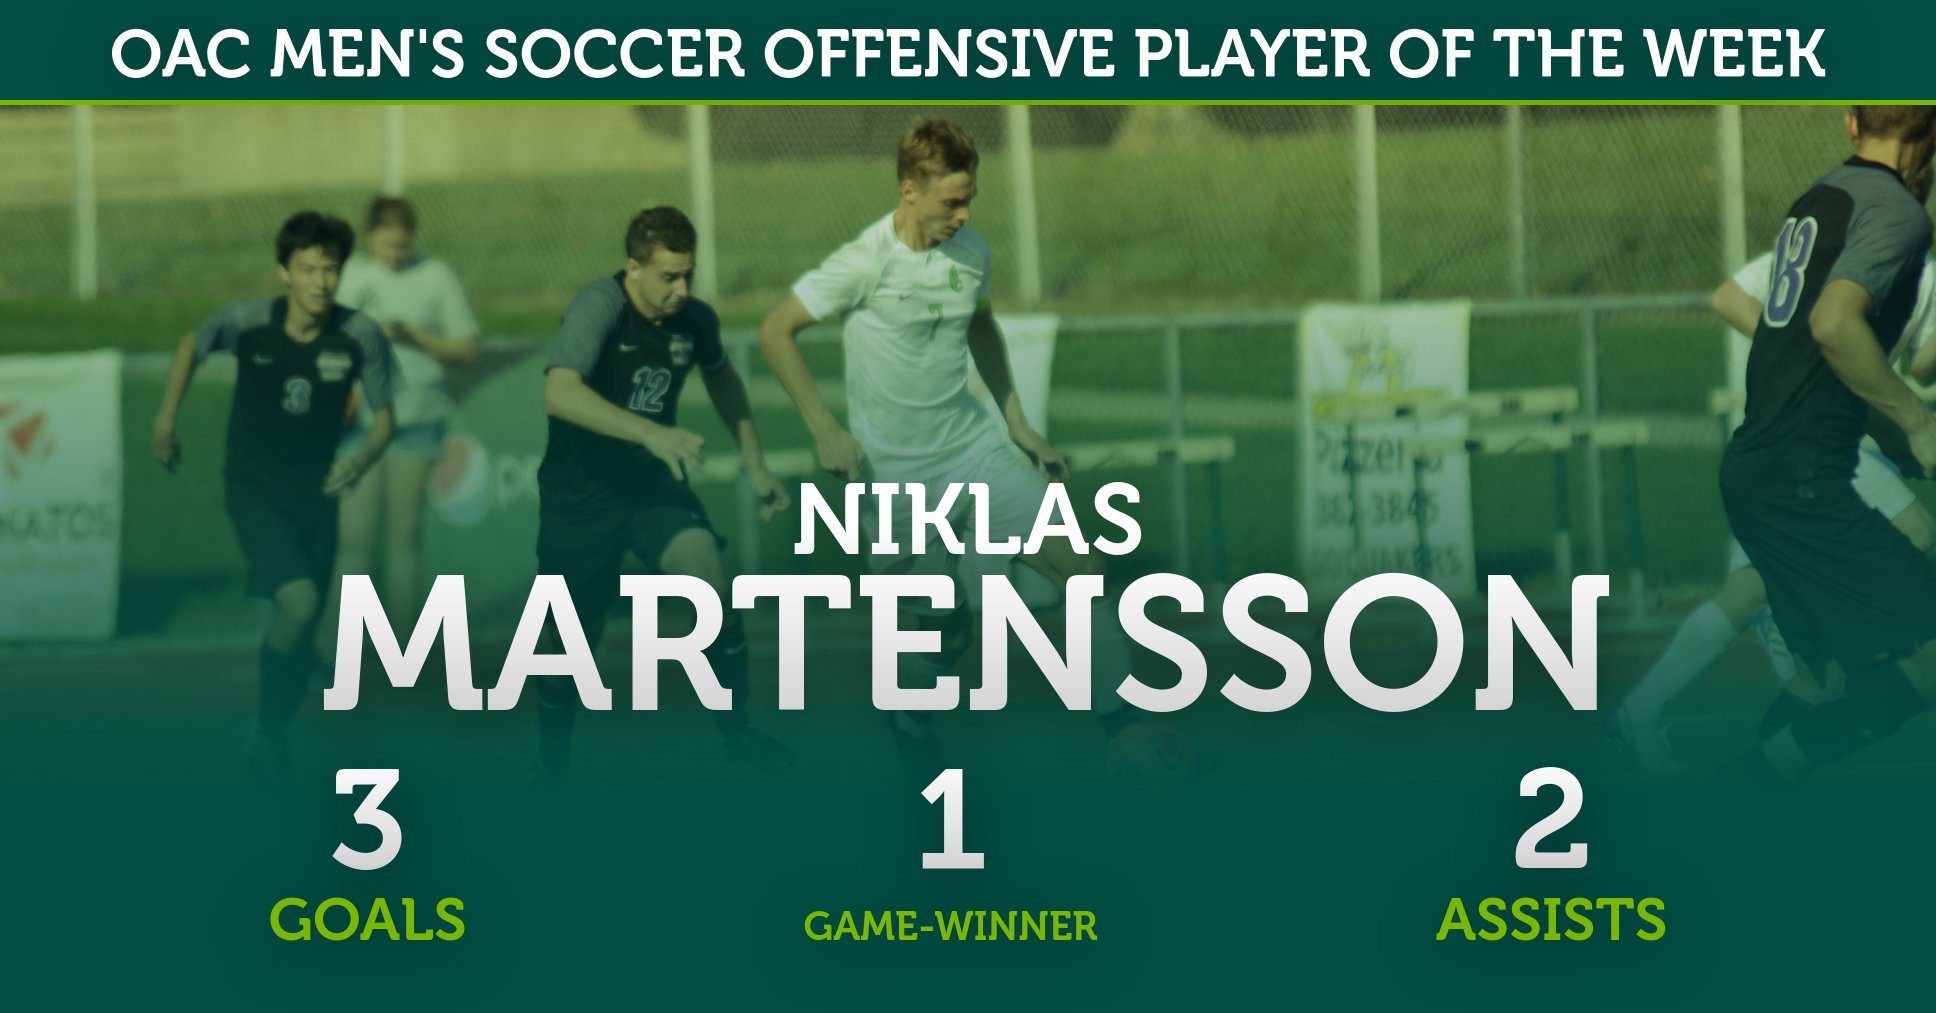 Martensson Garners OAC Men's Soccer Offensive Player of the Week Honors